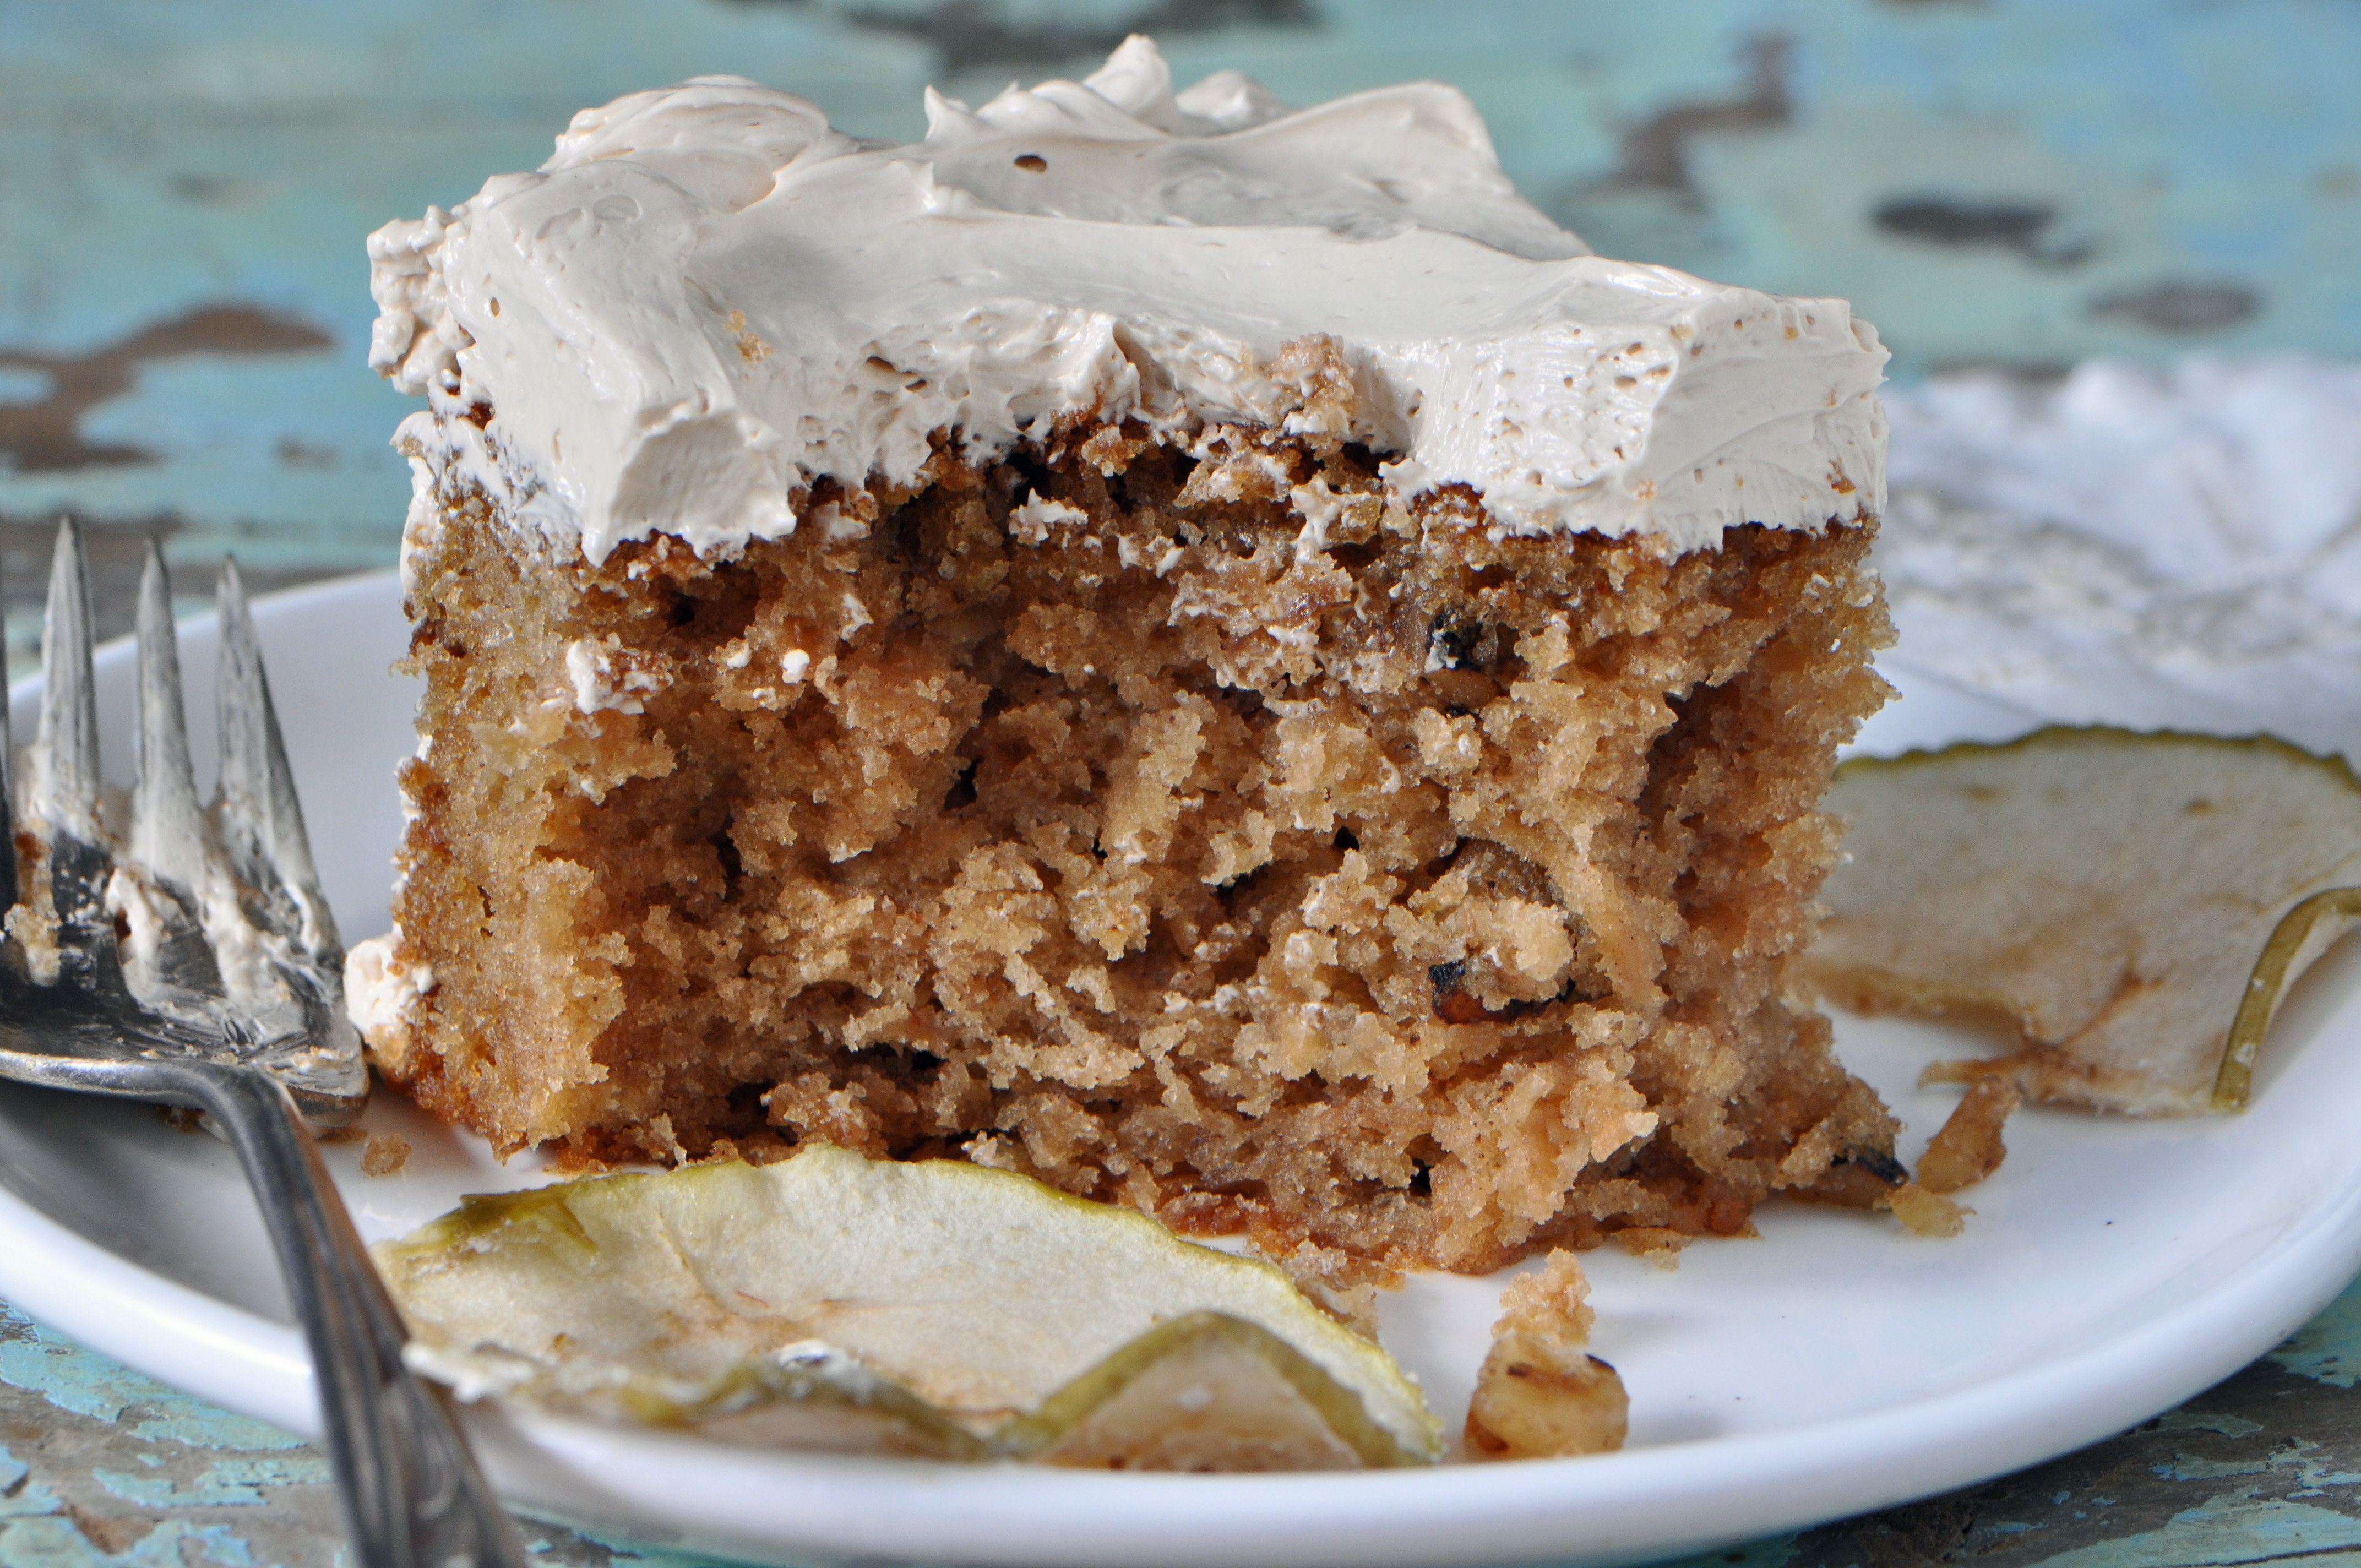 Apple Spice Cake  Apple Spice Cake with Brown Sugar Frosting Recipe